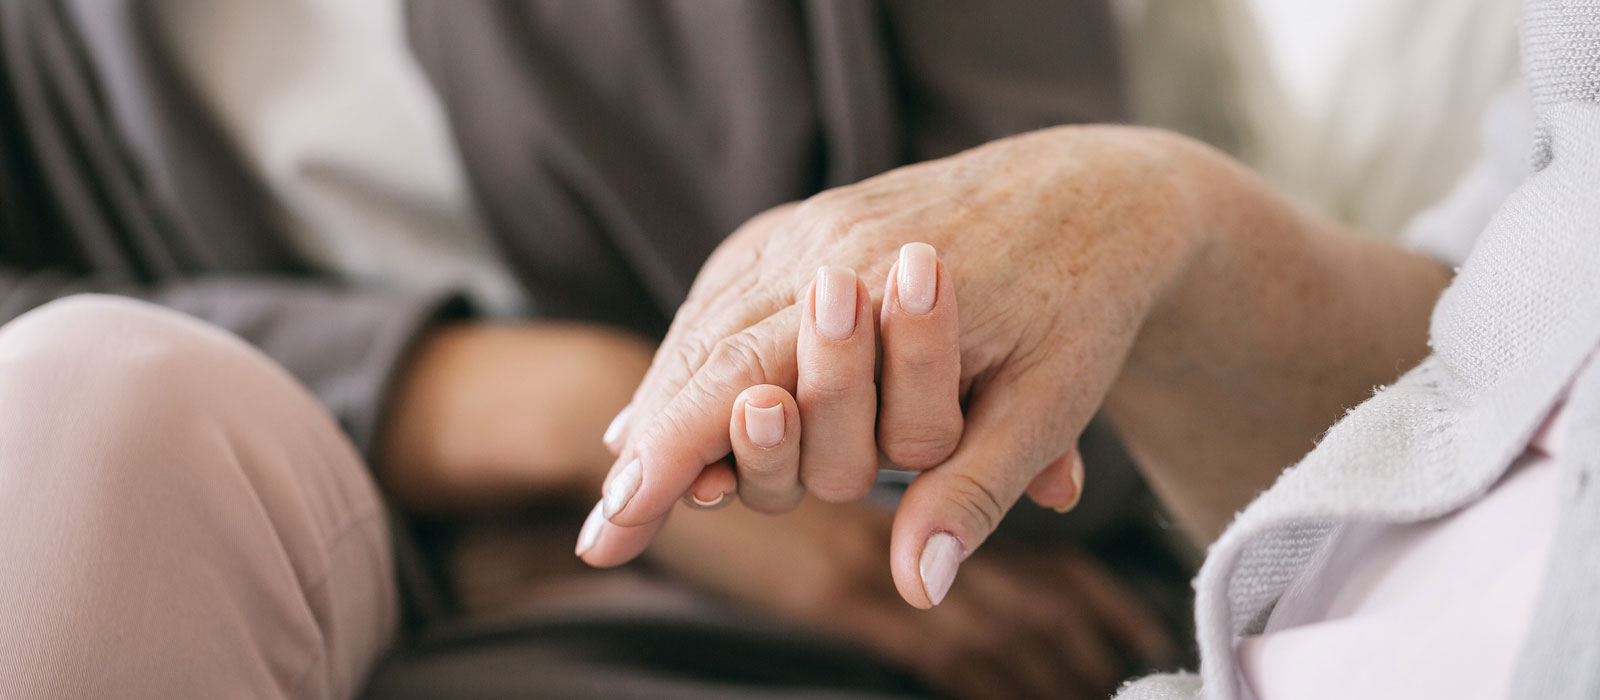 Hospice Care: Is it Giving Up